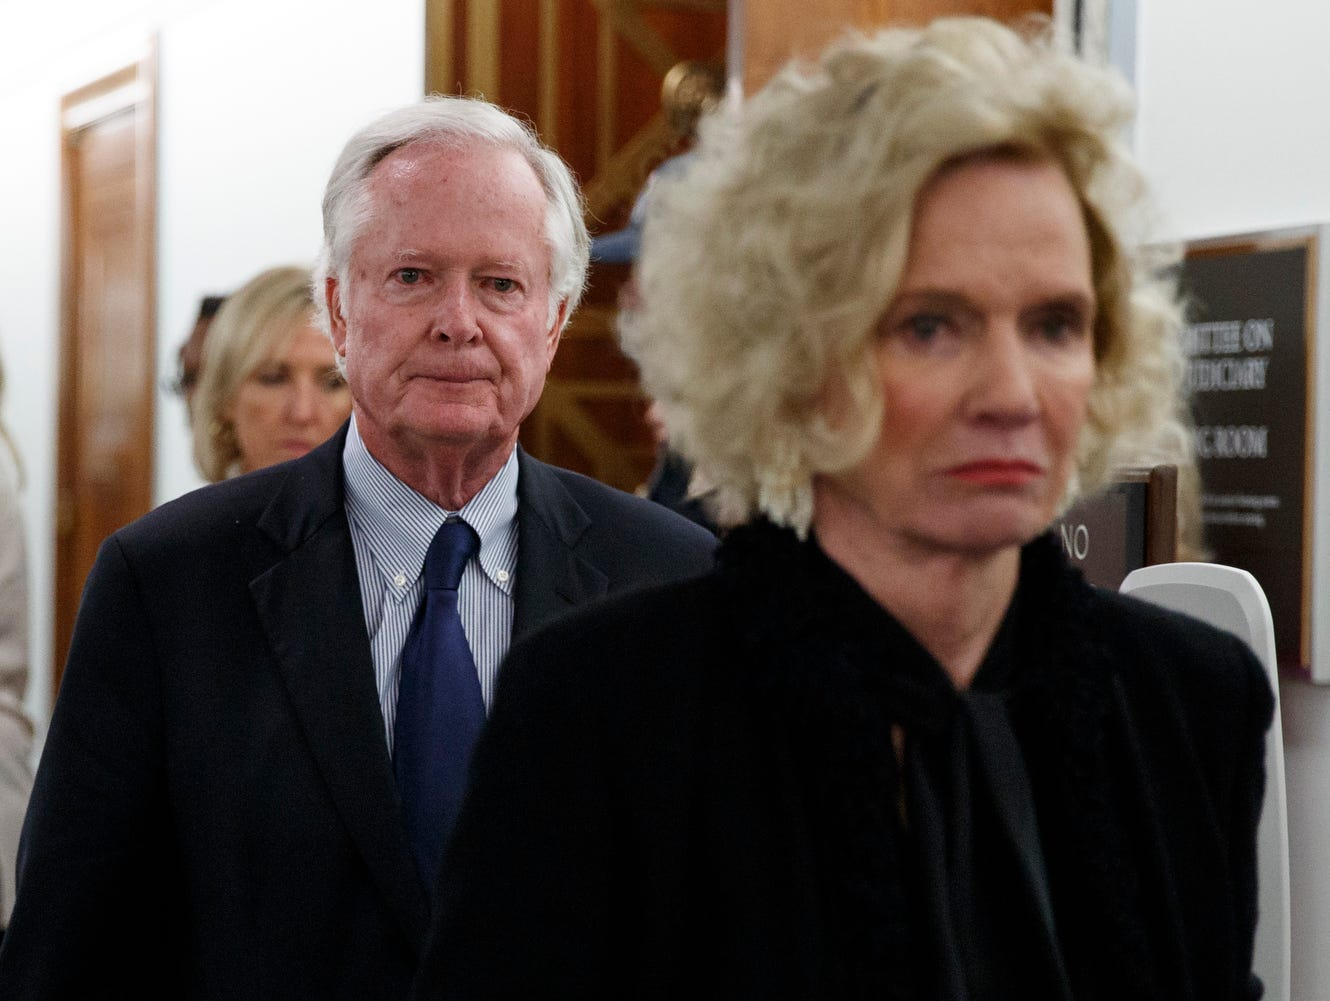 Judge Brett Kavanaugh's parents, Edward Kavanaugh and Martha Kavanaugh, walk from the hearing room during a break in a Senate Judiciary Committee hearing on Capitol Hill.